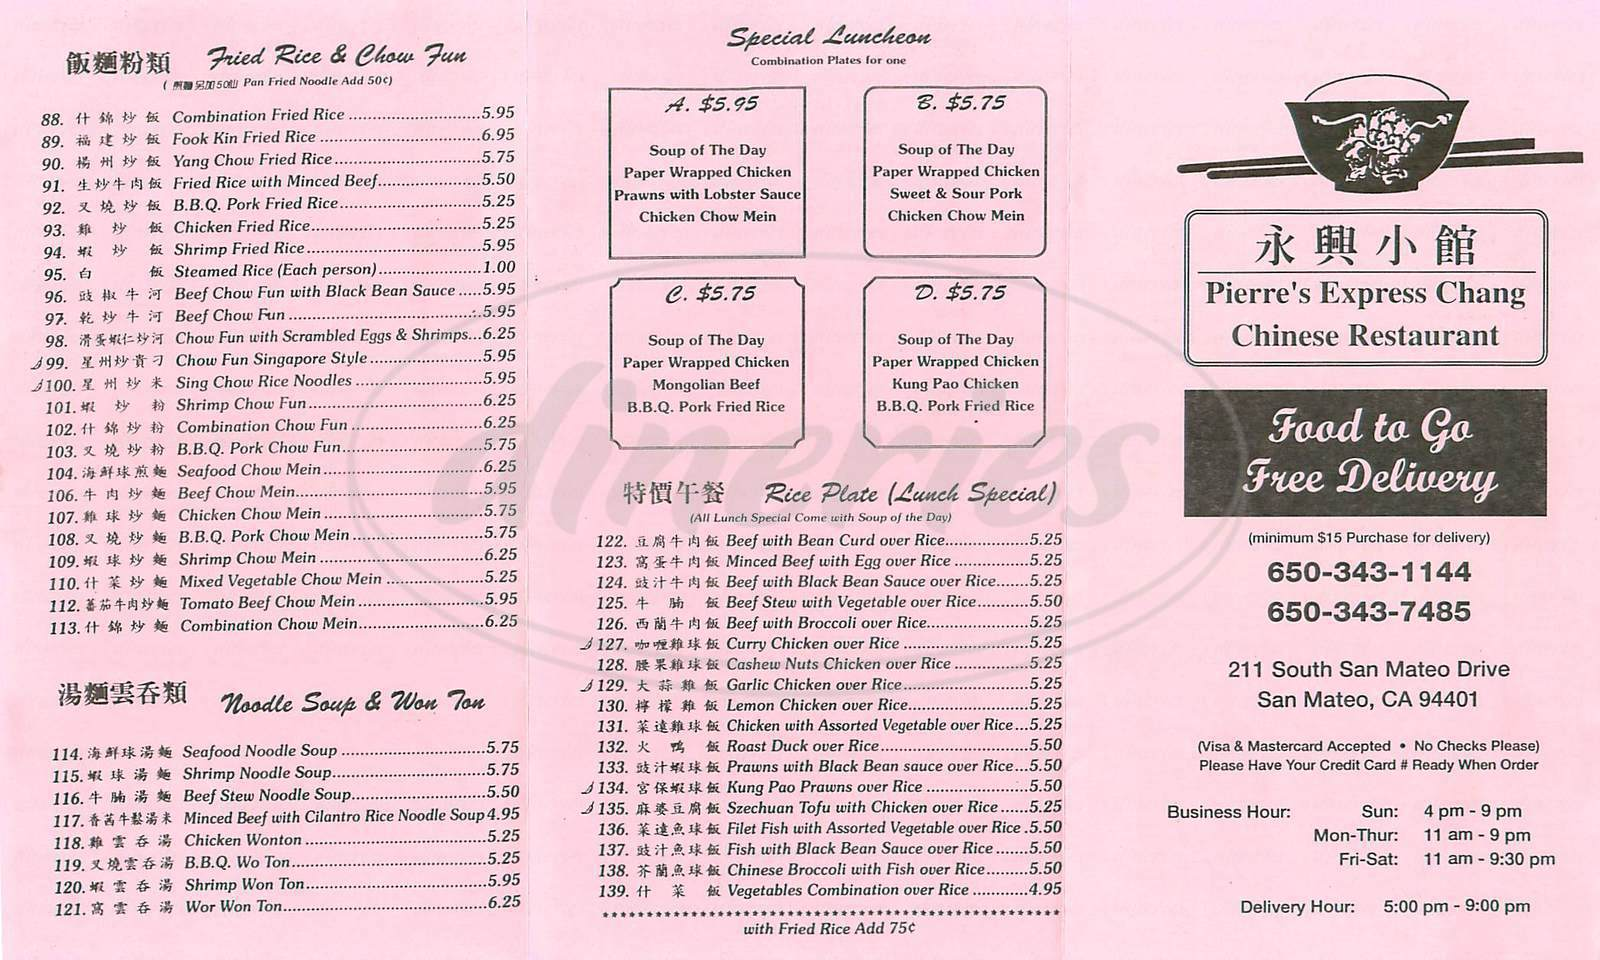 menu for Pierres Express Chang